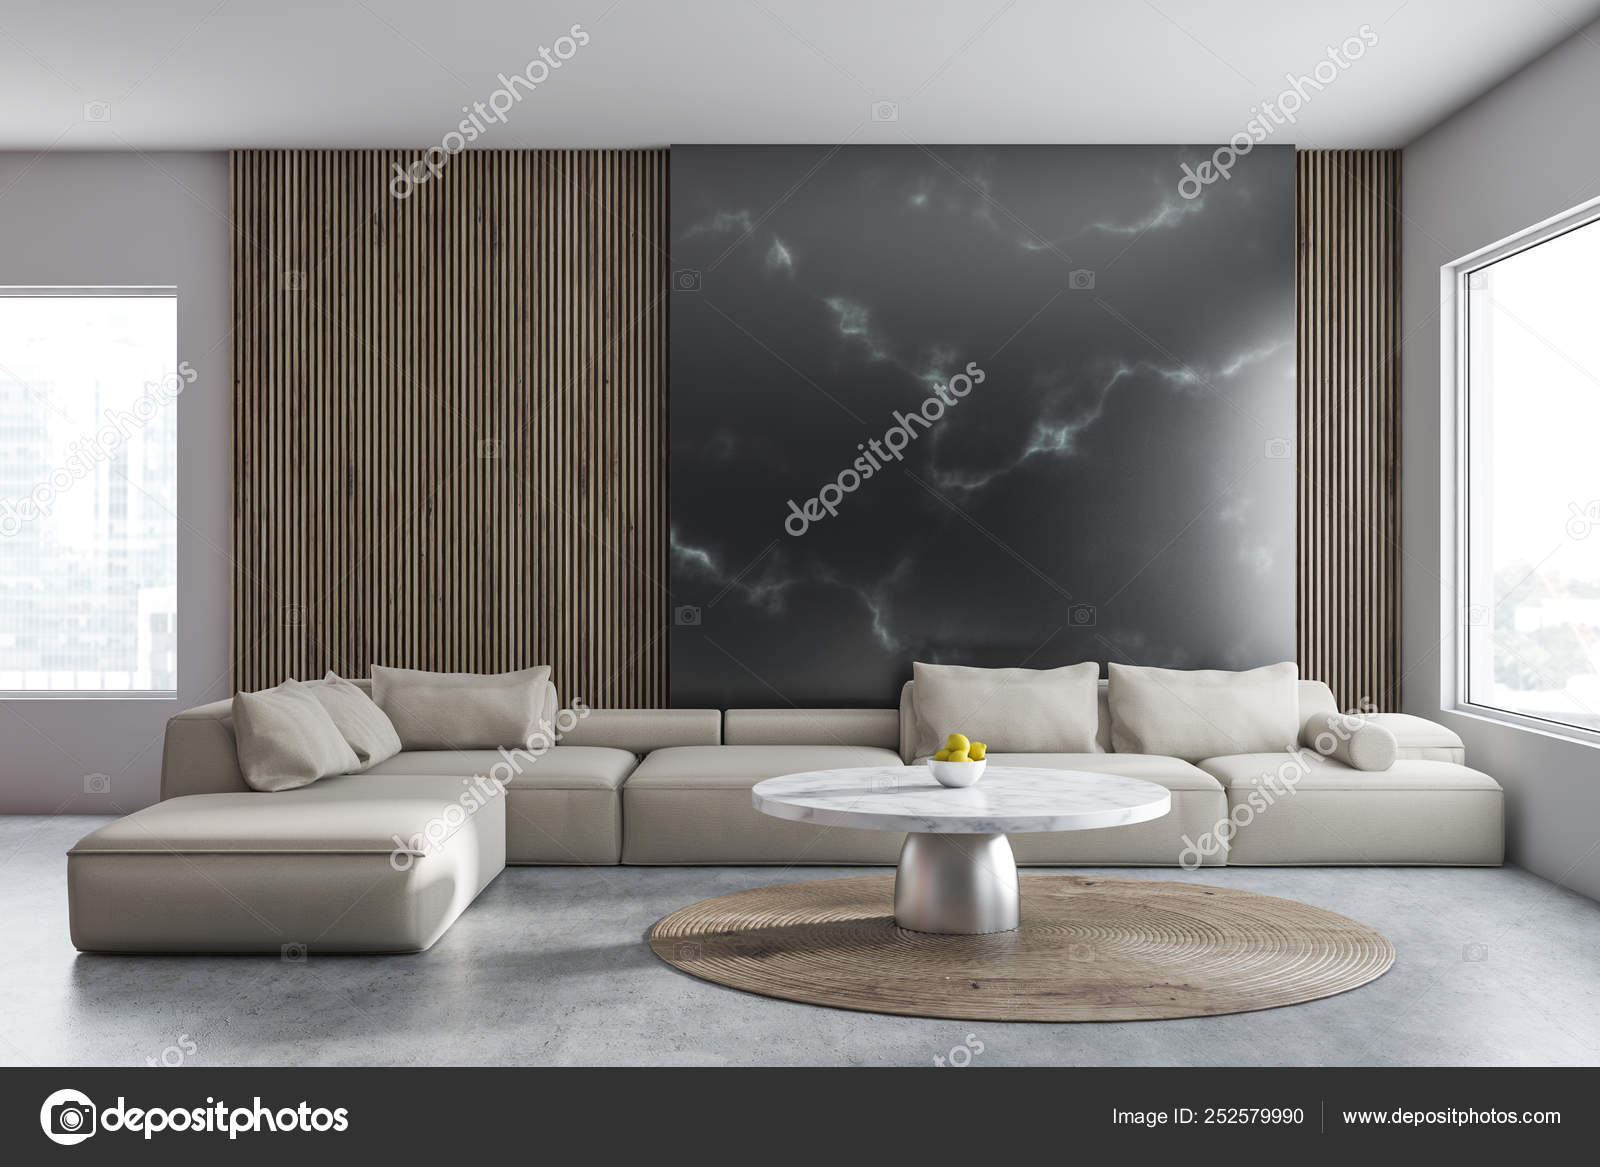 Black Marble And Wooden Living Room Interior Stock Photo C Denisismagilov 252579990